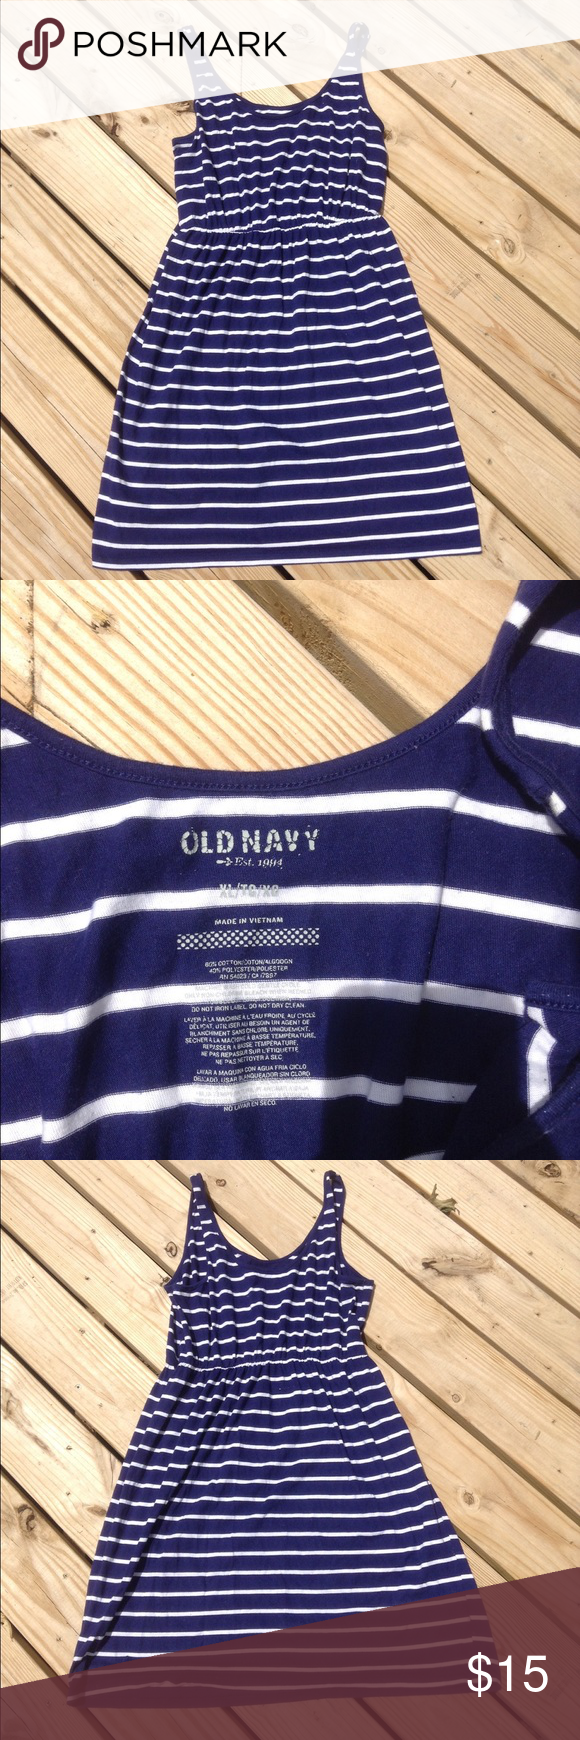 OLD NAVY BLUE AND WHITE STRIPED NAUTICAL DRESS XL Cute good condition Old Navy dress. Size XL. Great for the beach. Old Navy Dresses Midi